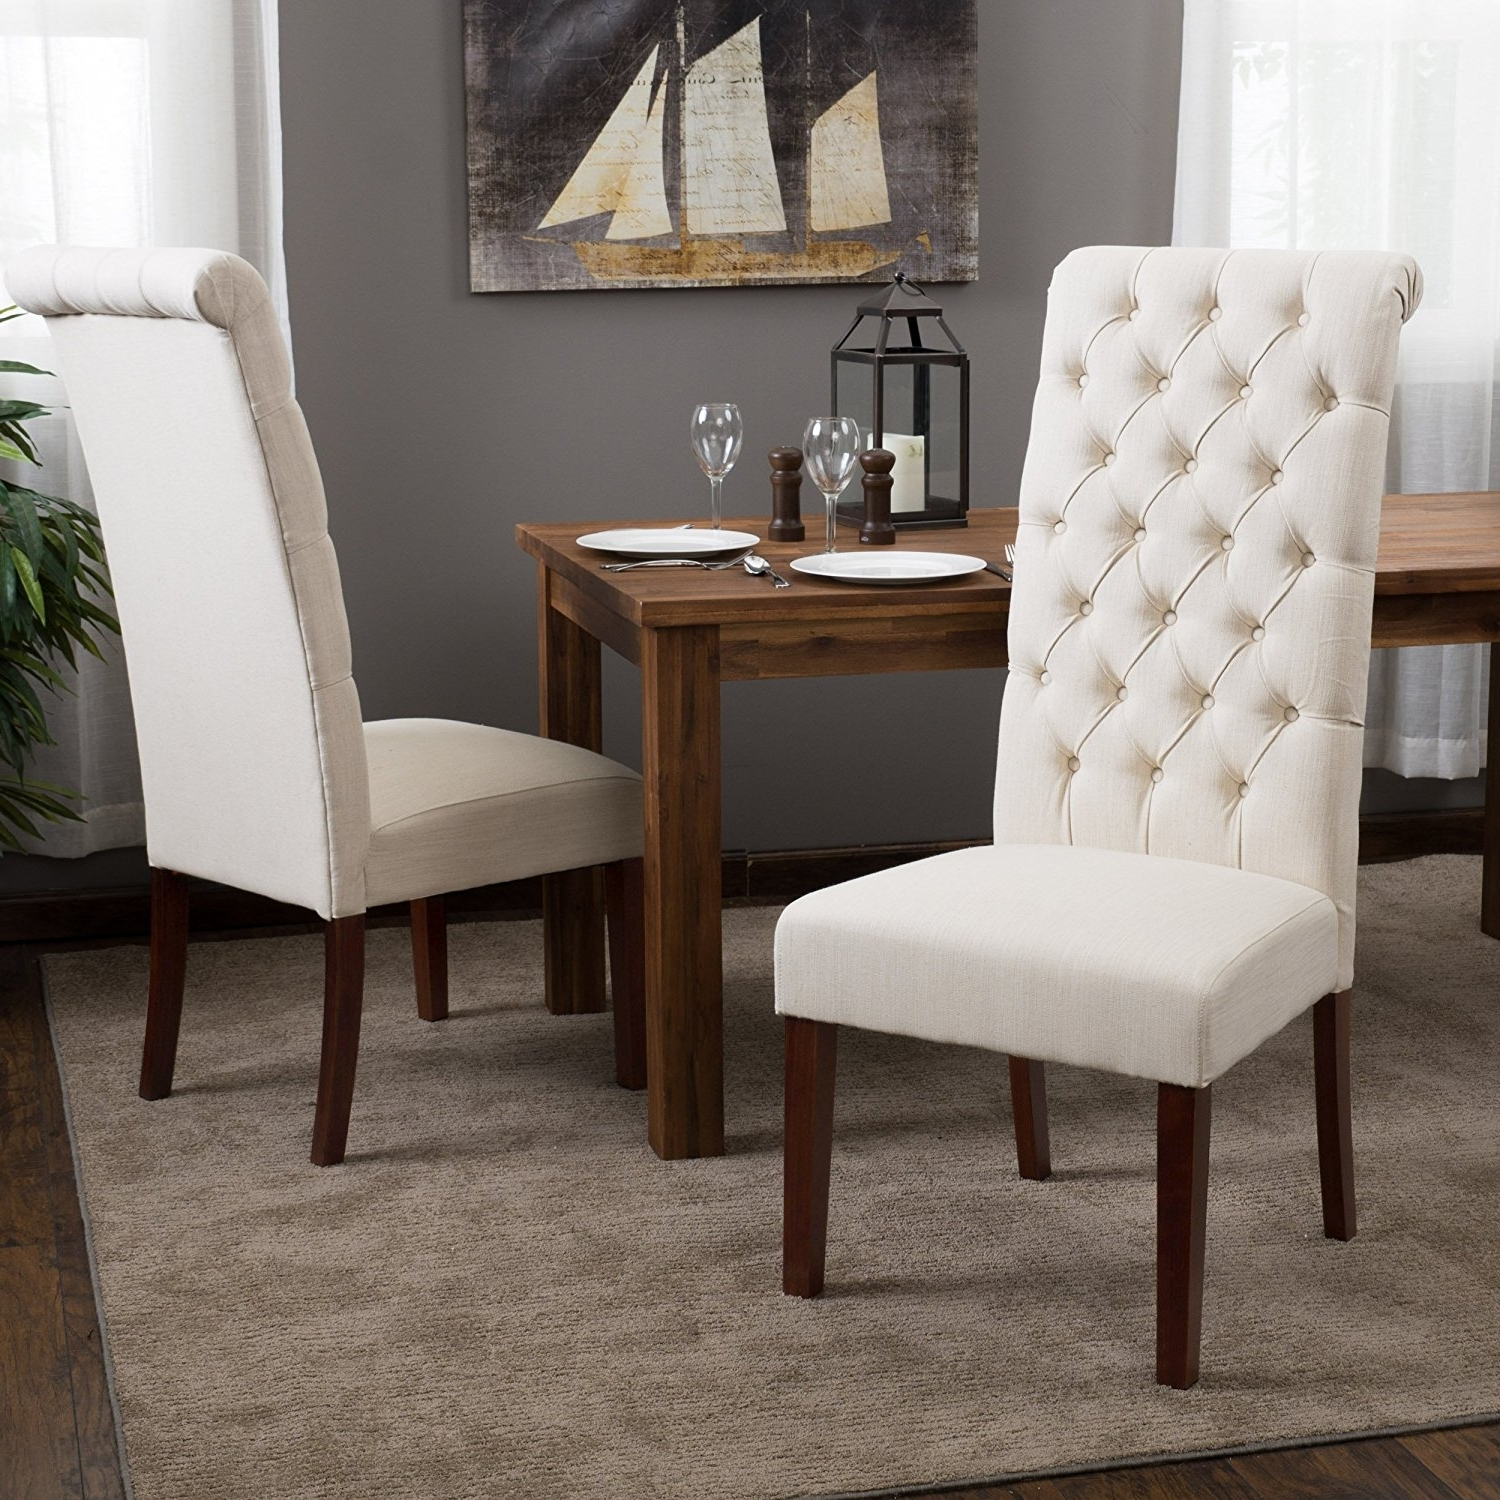 Tips On How To Choose A Fabric Dining Chairs – Bellissimainteriors With Fashionable Fabric Covered Dining Chairs (View 9 of 25)